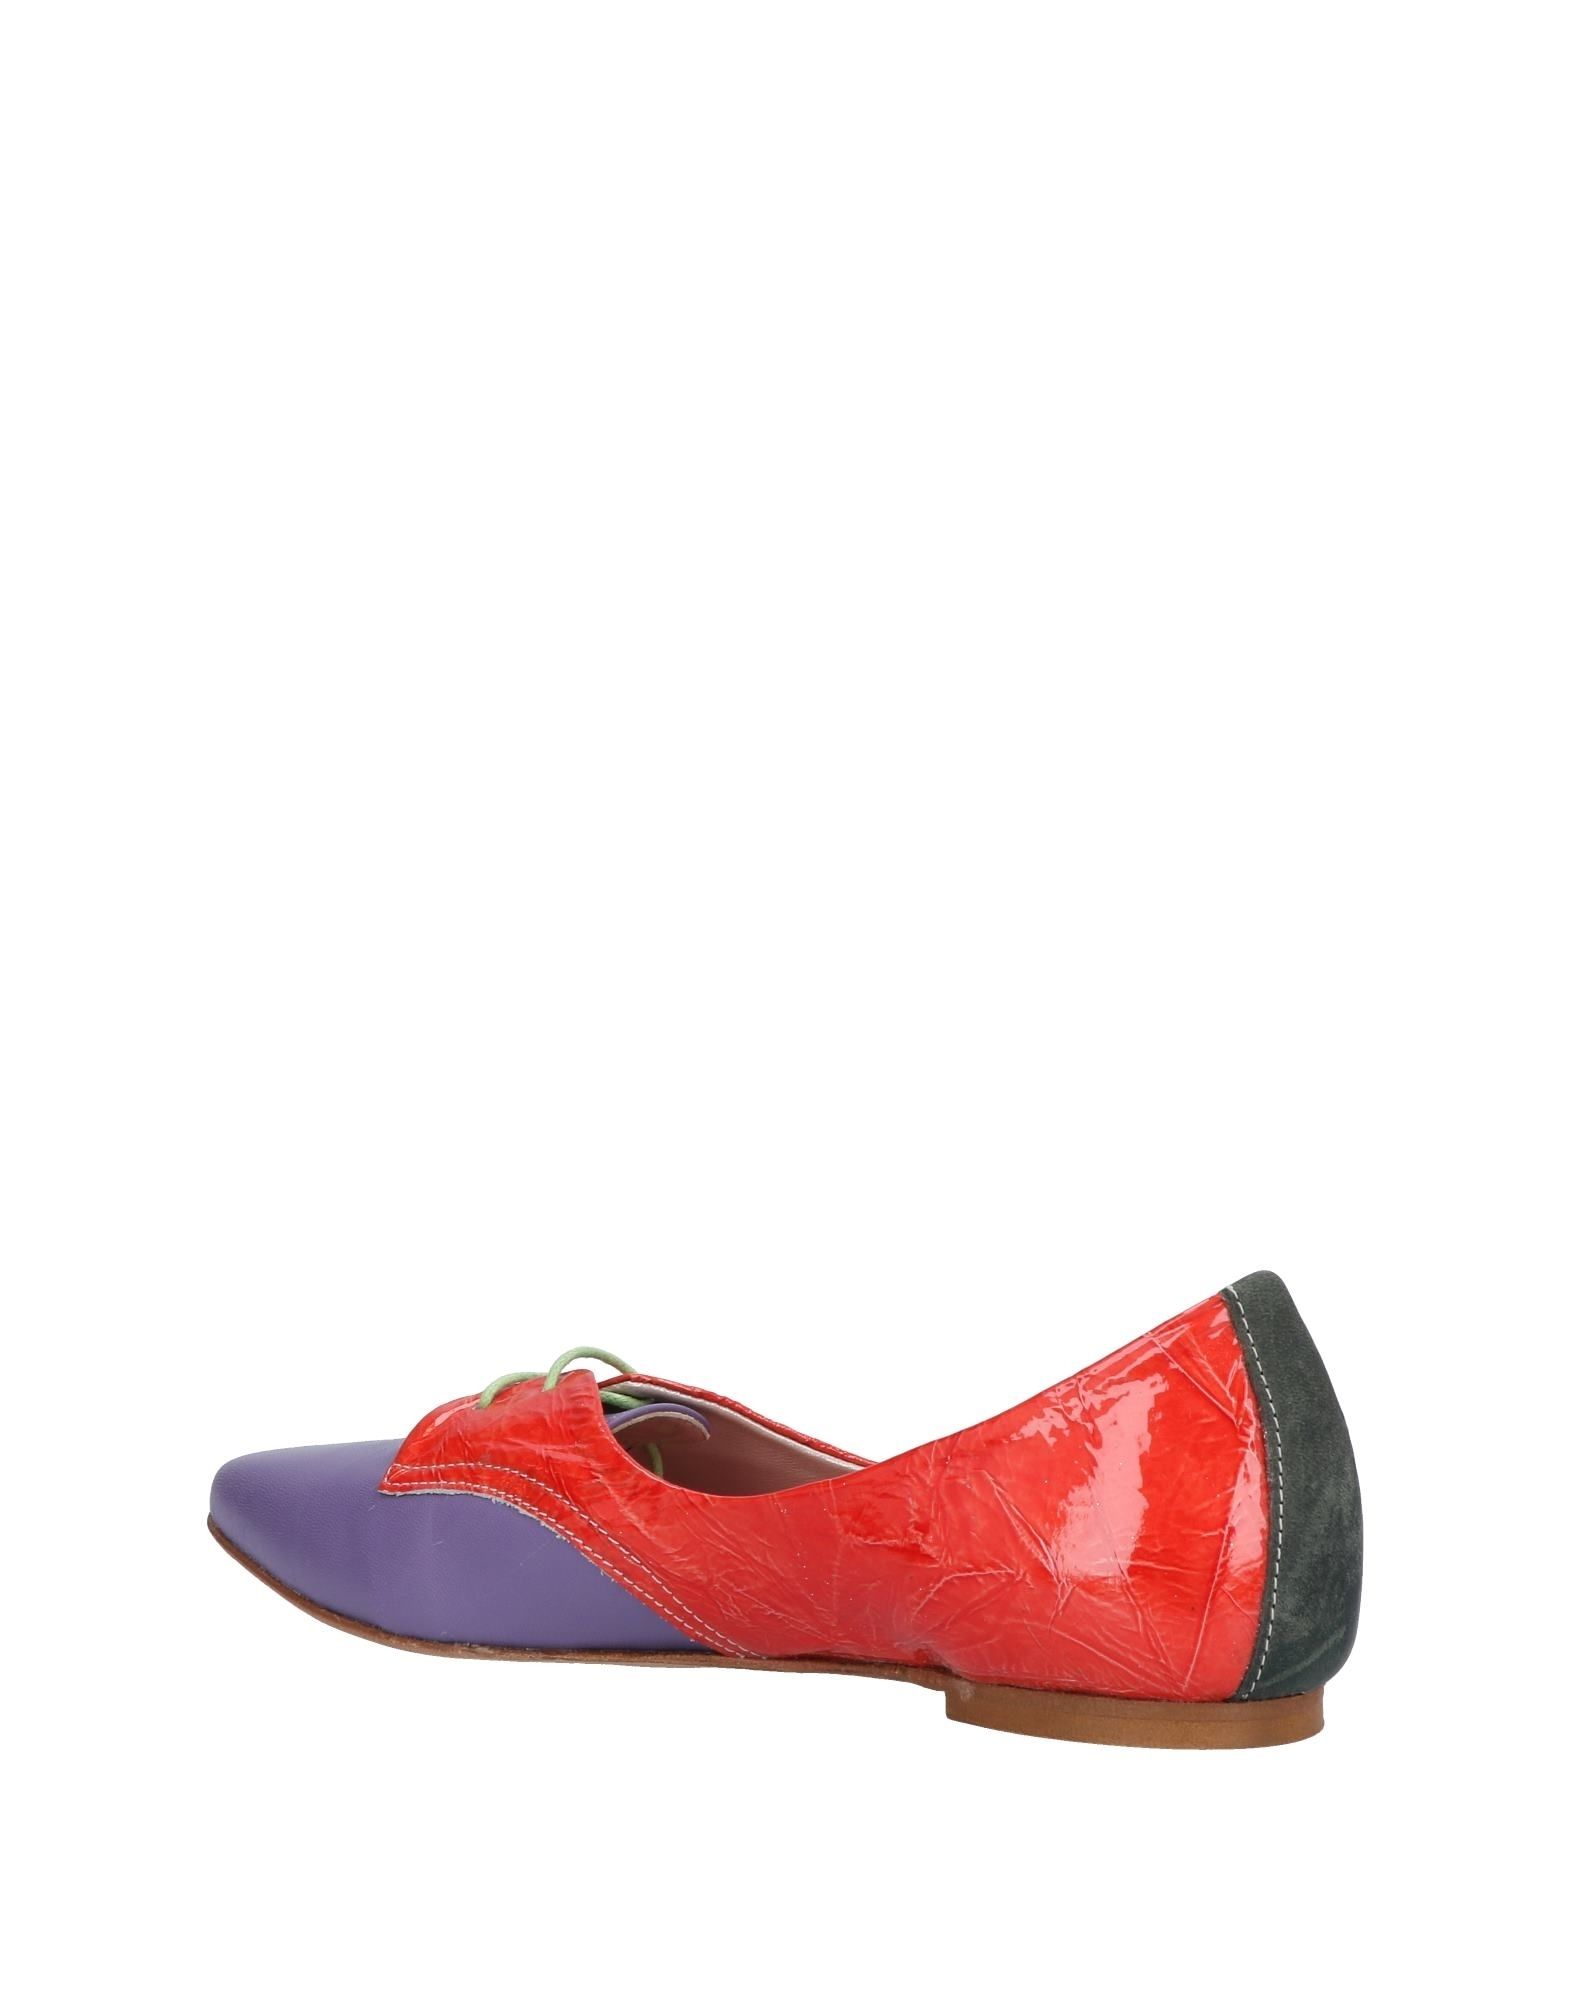 Mocassino Ebarrito Donna - 11458524DX 11458524DX 11458524DX f192d5